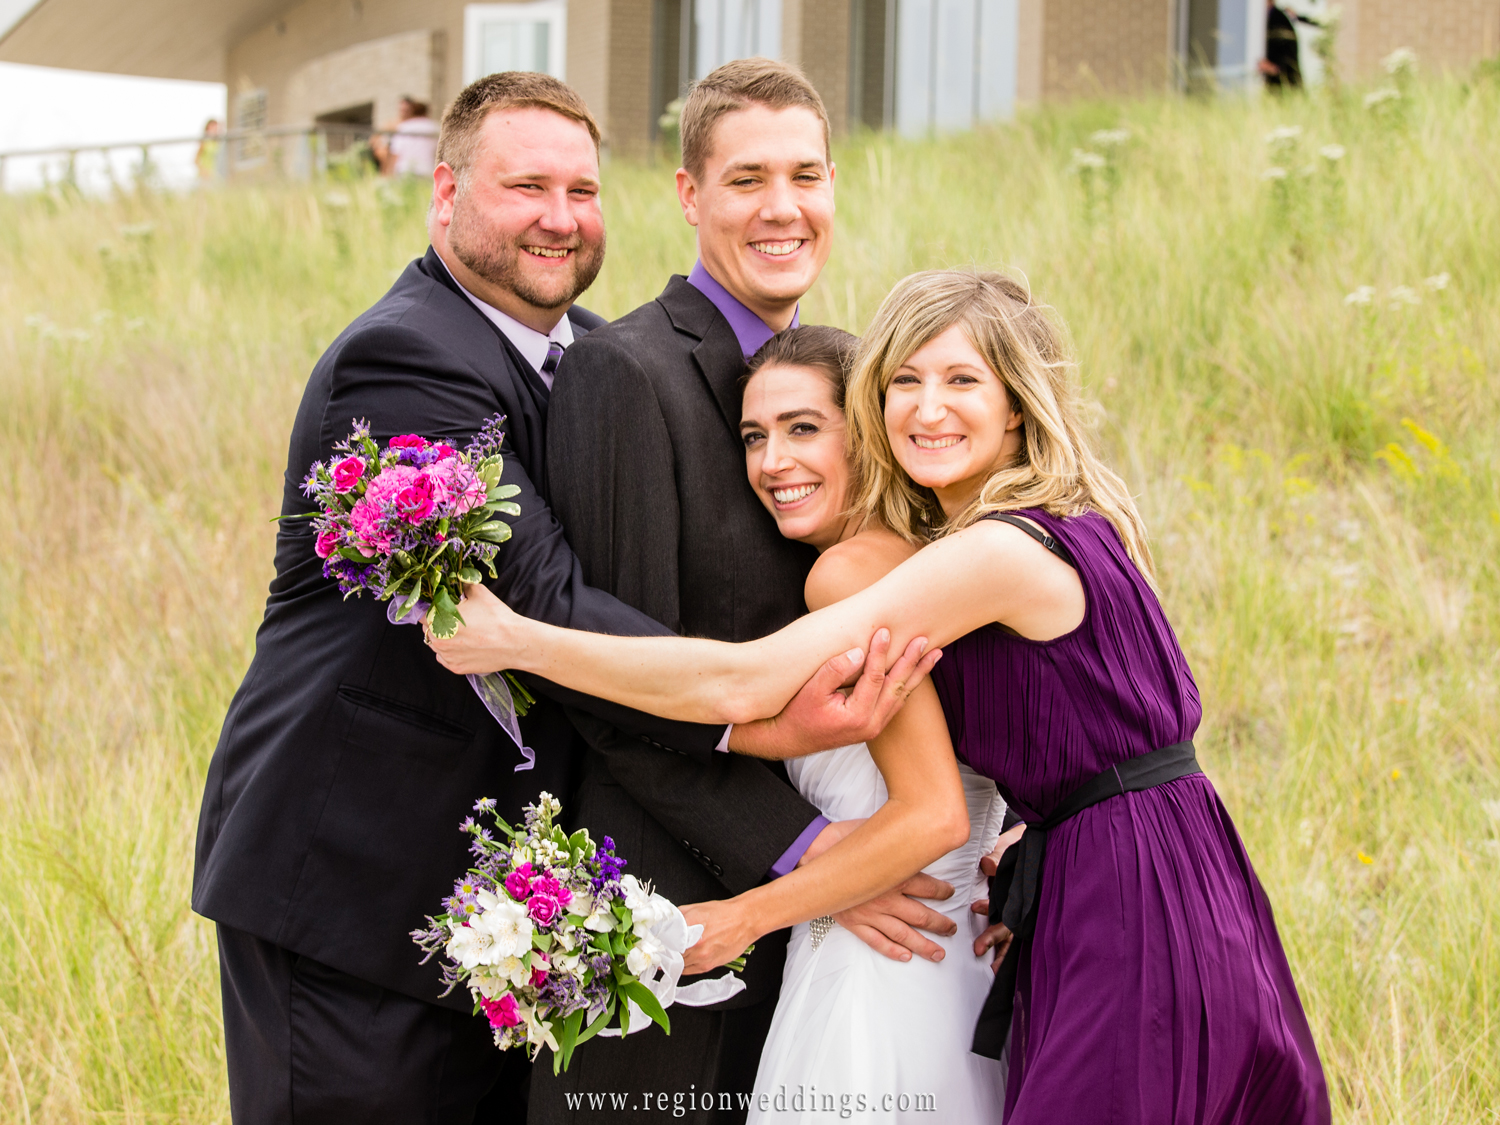 A group hug as the best man and matron of honor sandwich the bride and groom for a casual, fun wedding photo.